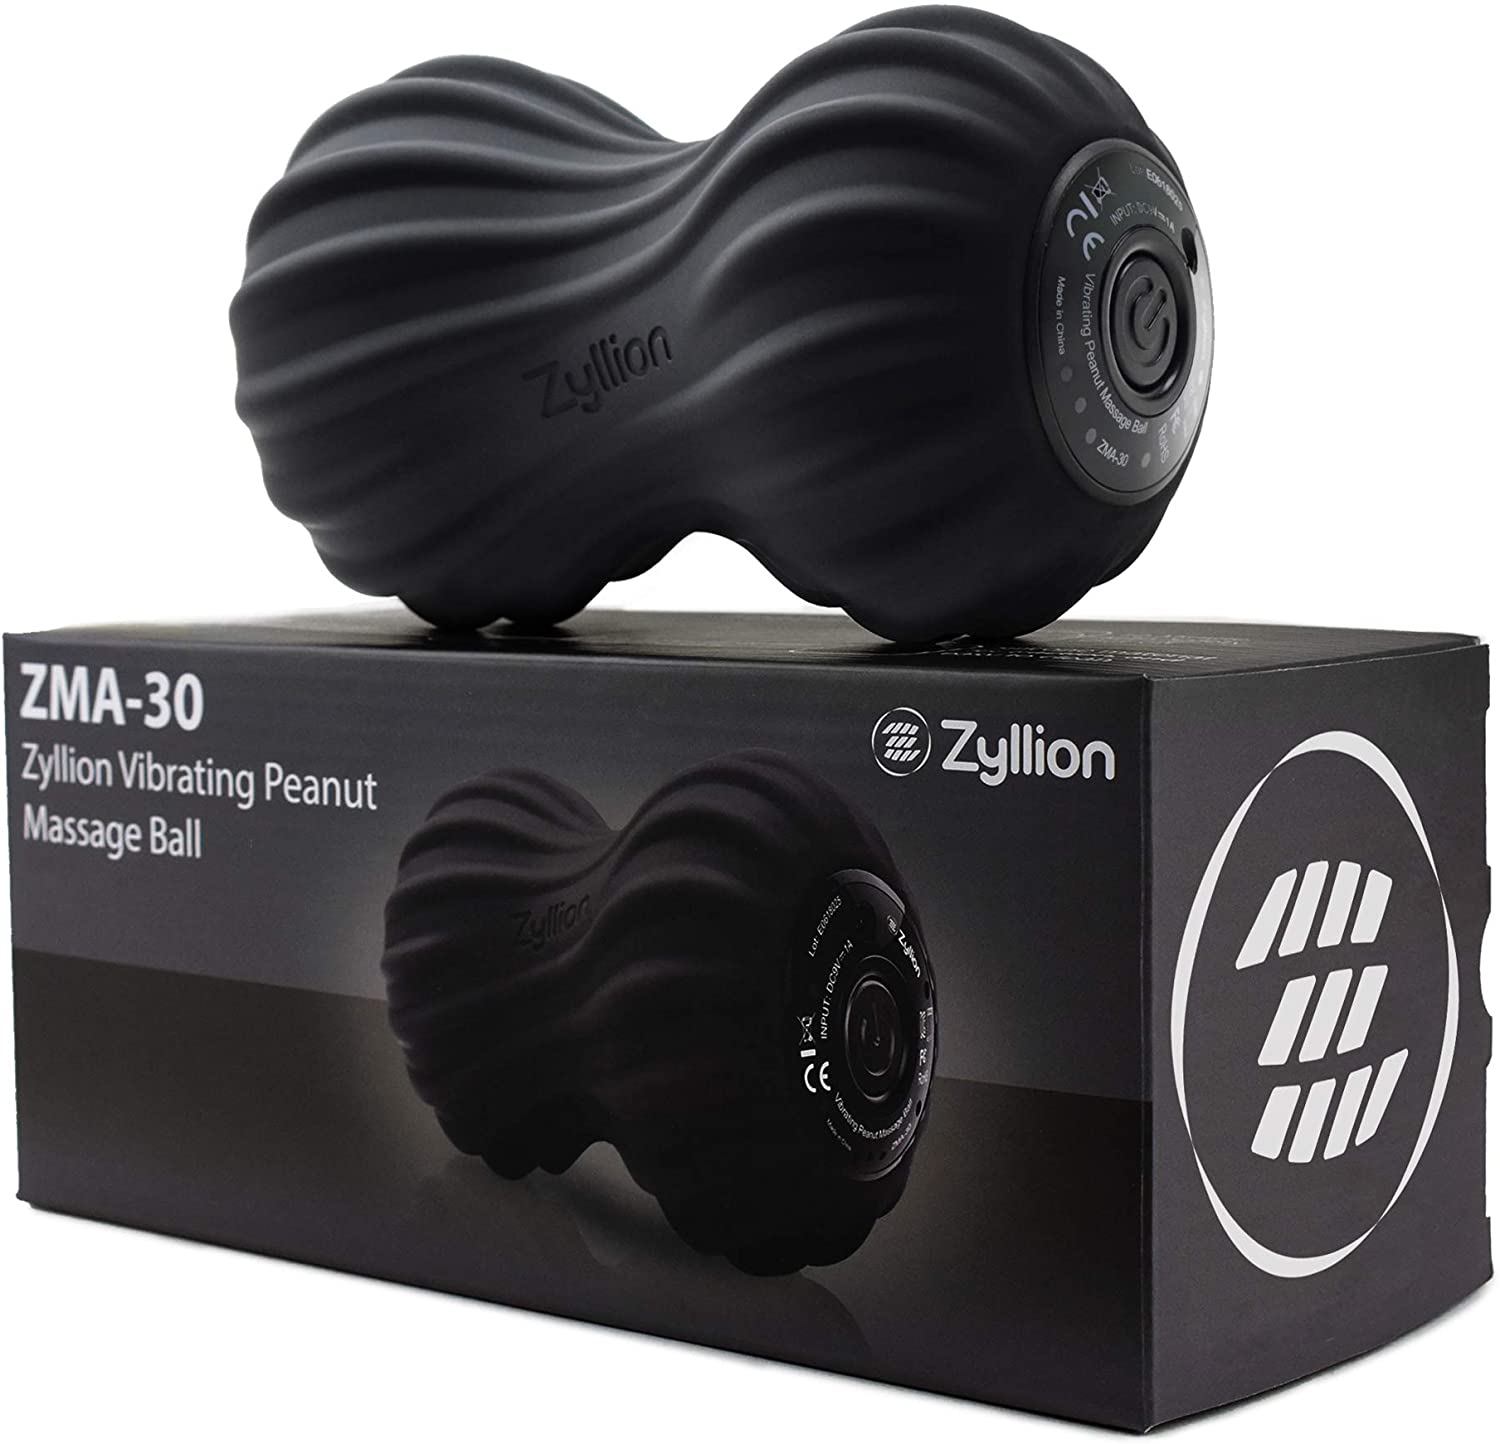 Zyllion Vibrating Peanut Massage Ball - Rechargeable Muscle Roller for Trigger Point Therapy, Deep Tissue Massage, Myofascial Release and Sports Recovery (Black)